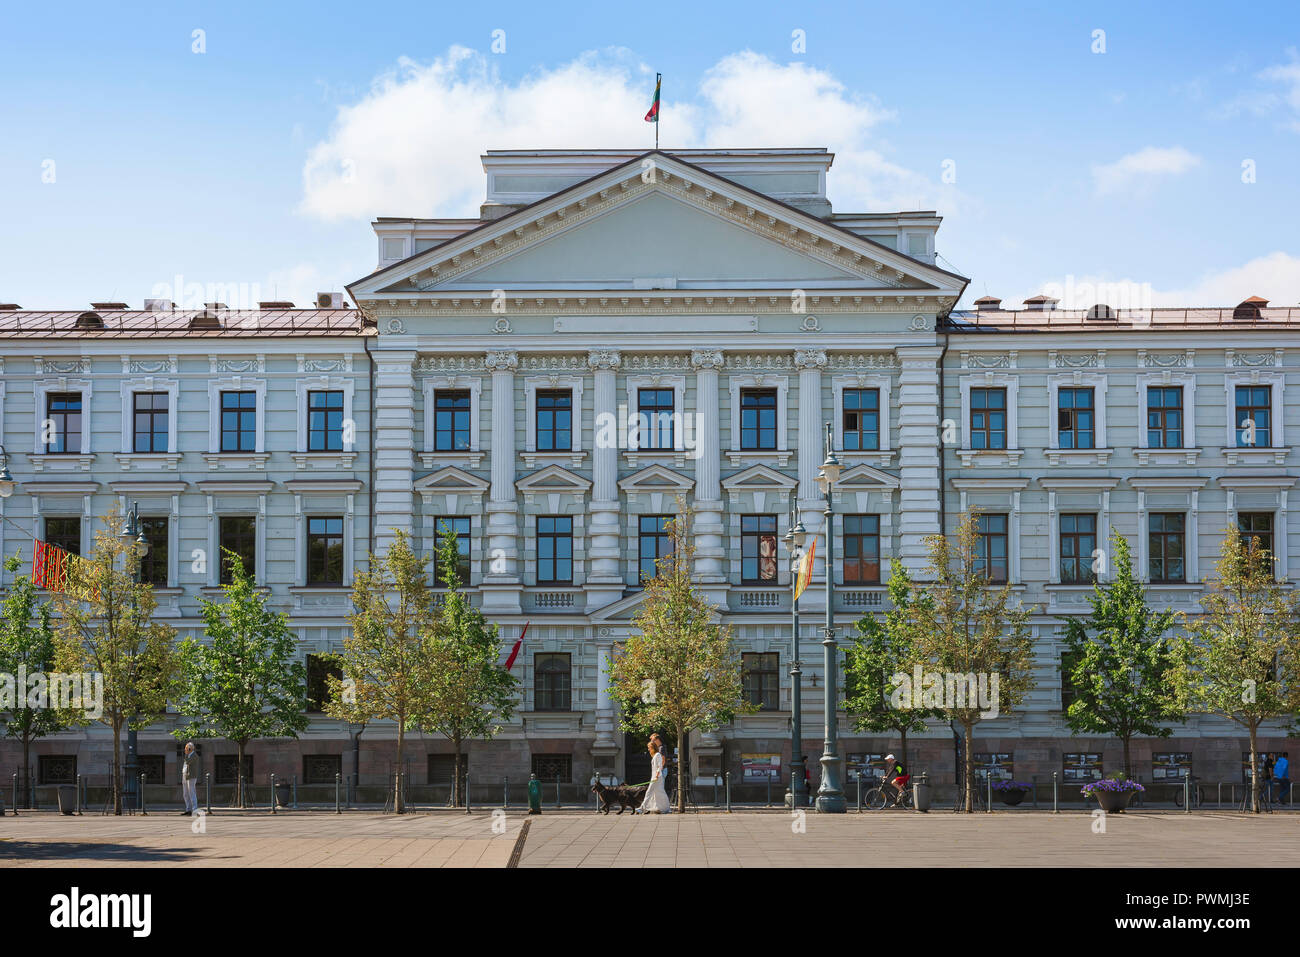 Vilnius Museum Of Genocide Victims, front of the building used by Soviet and Nazi authorities in 1940s and 1950s to imprison and execute Lithuanians. - Stock Image